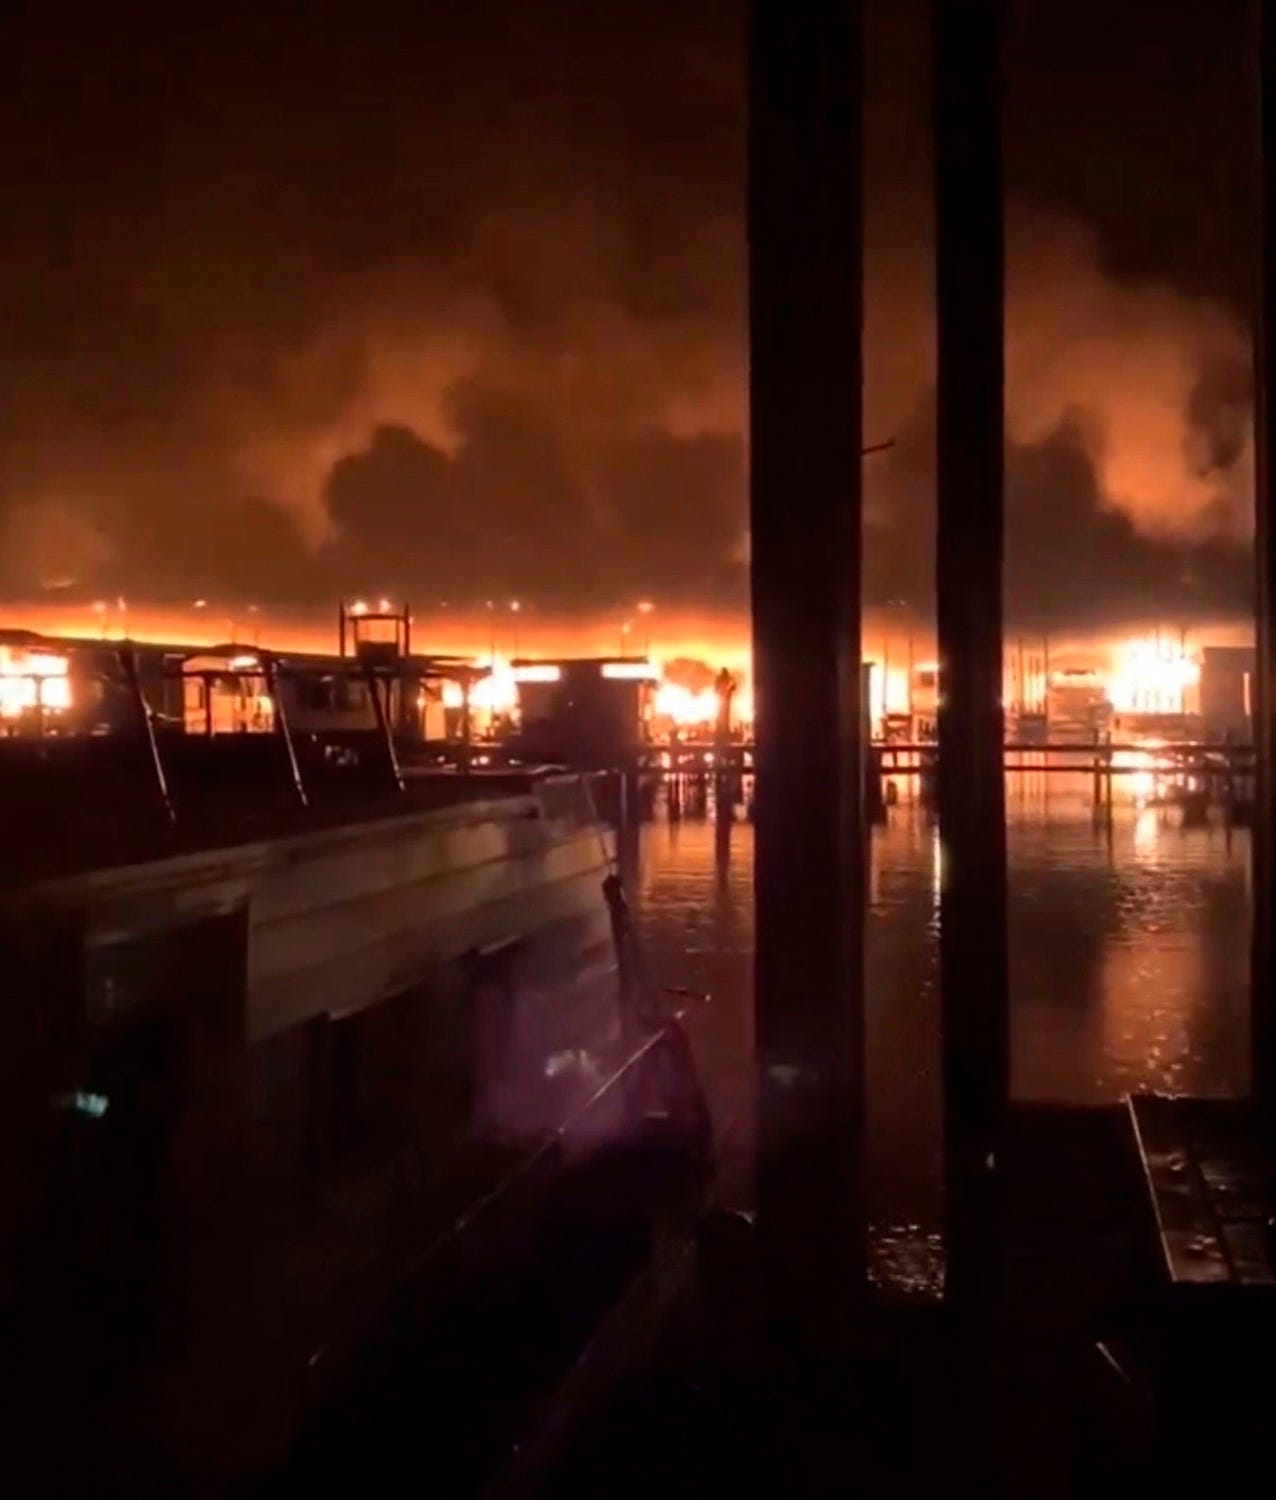 'You could hear people screaming': Alabama fire chief confirms 8 deaths after fire destroys 35 boats